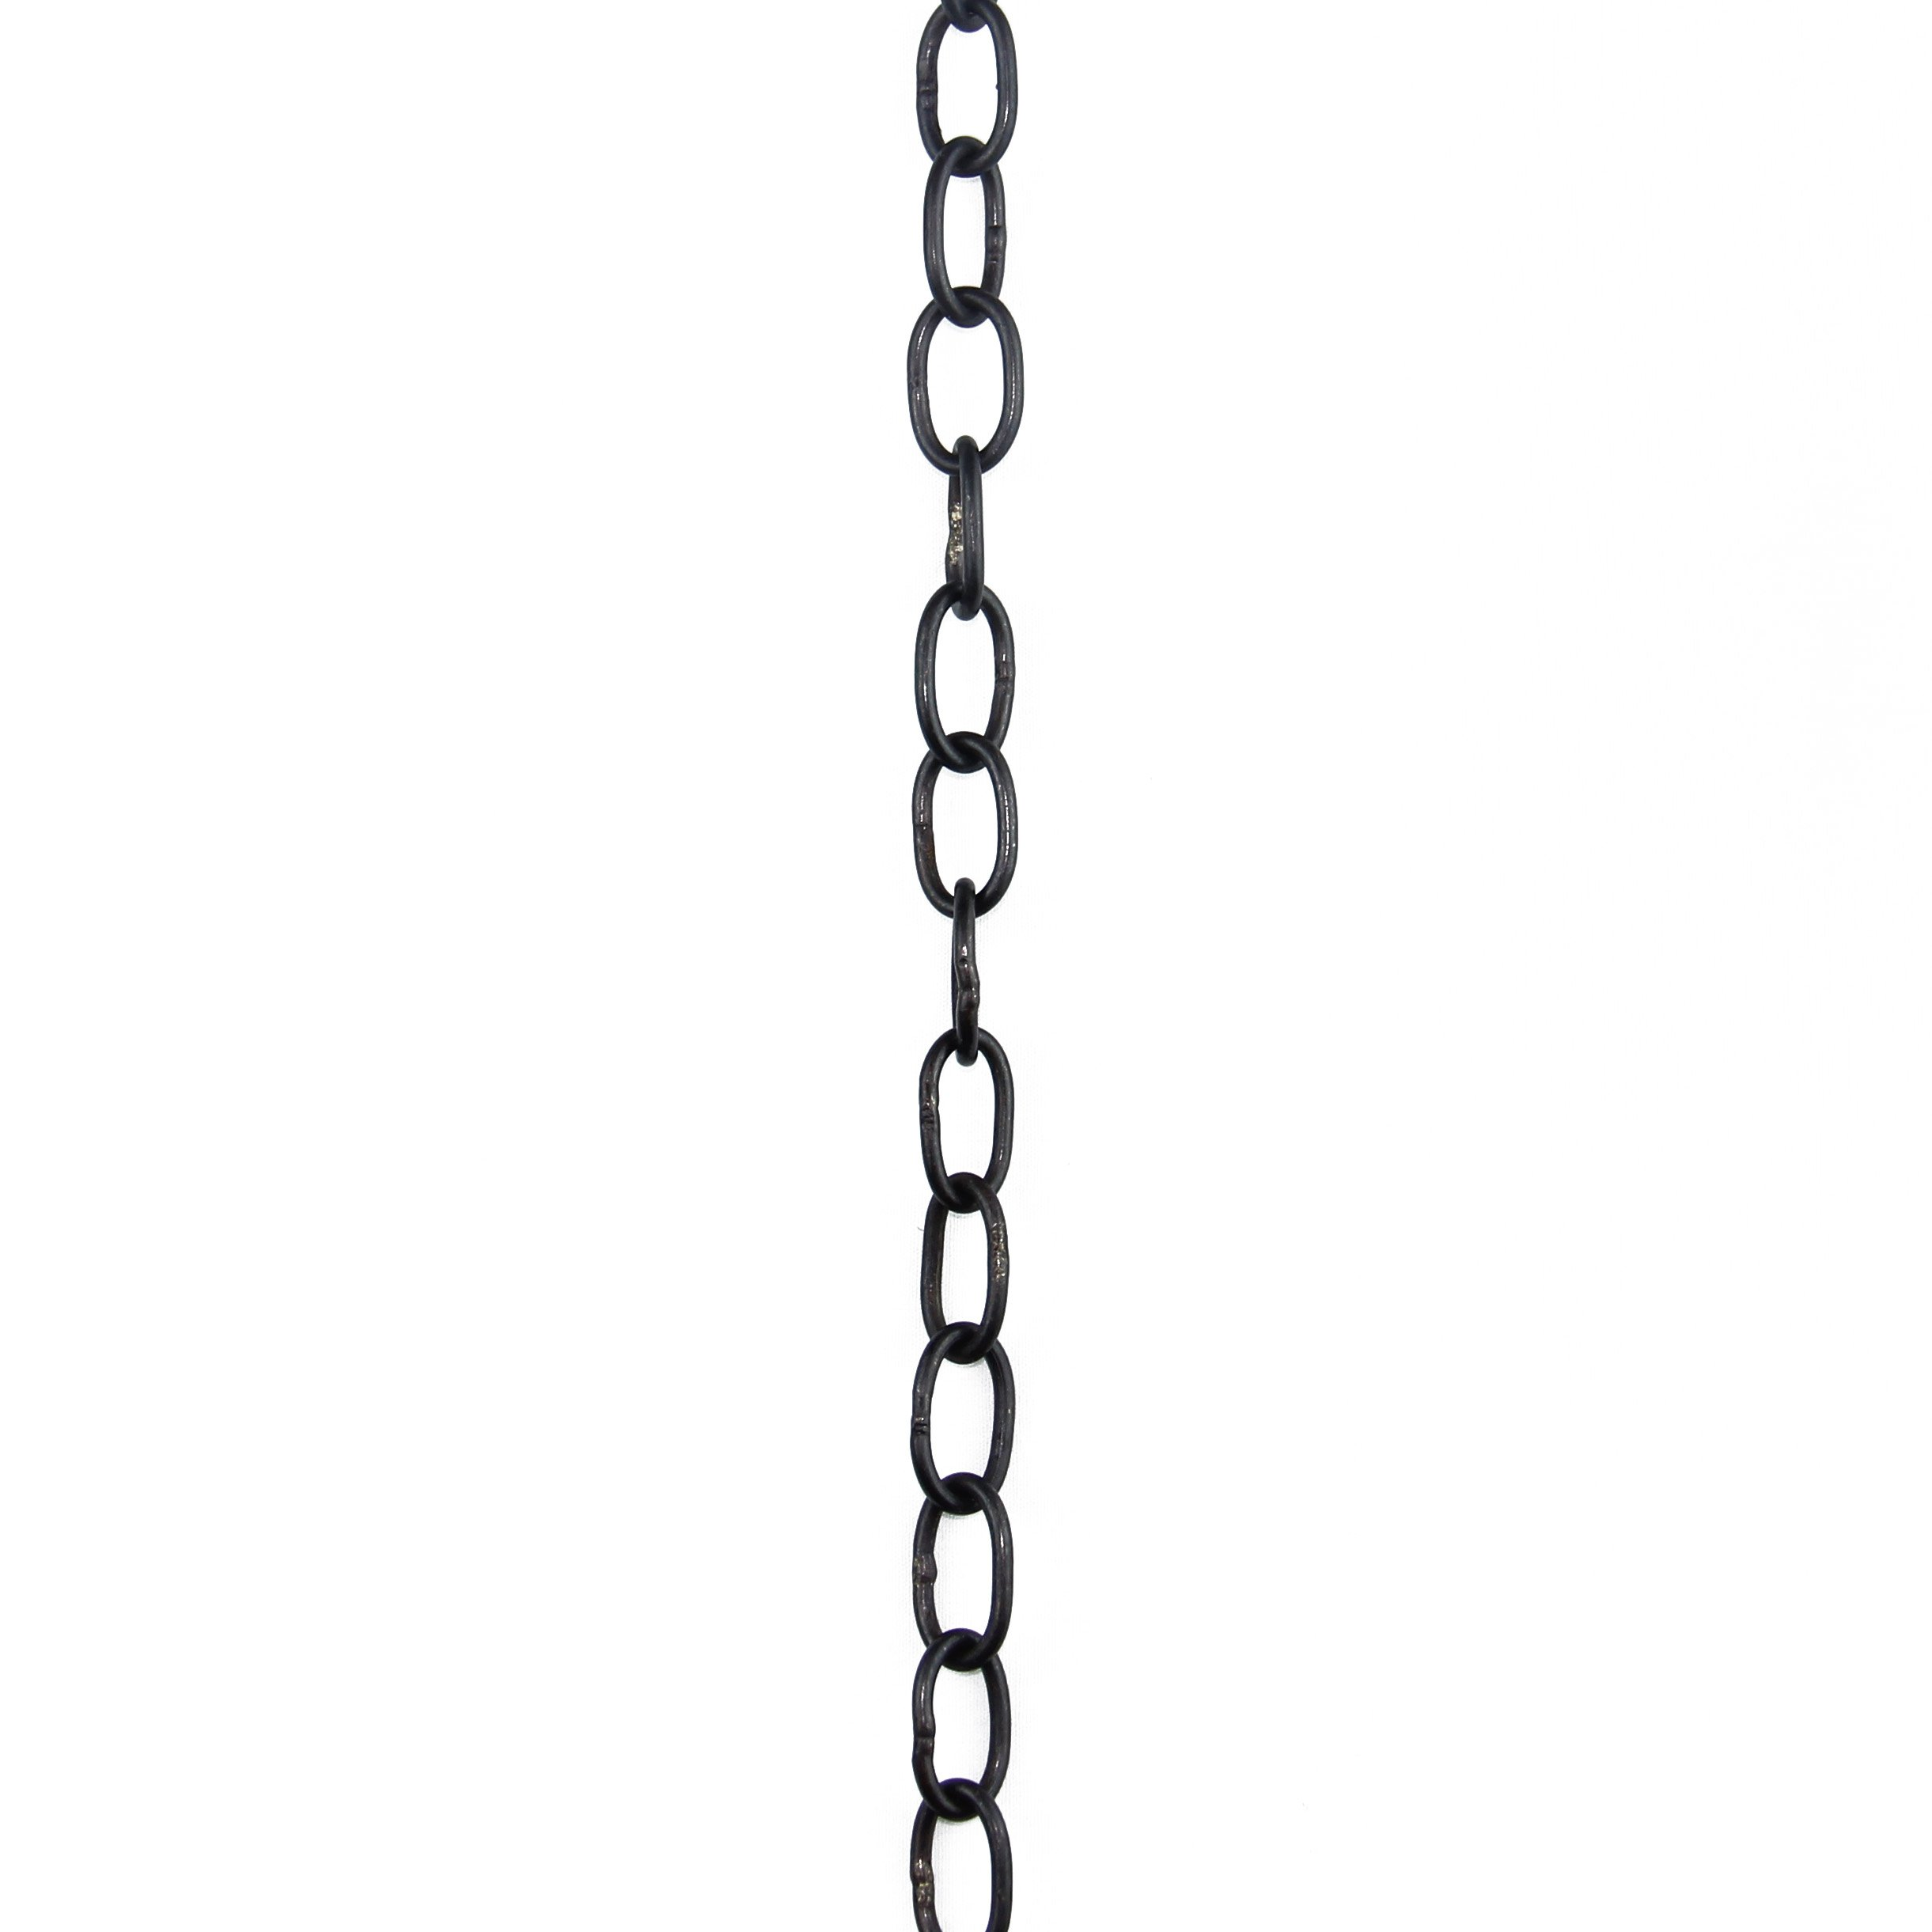 RCH Hardware CH-06W-OBB-3 Decorative Solid Brass Chain for Hanging Lighting Oval Welded Links (3 ft/1 Yard) (Oil Bronzed Black)